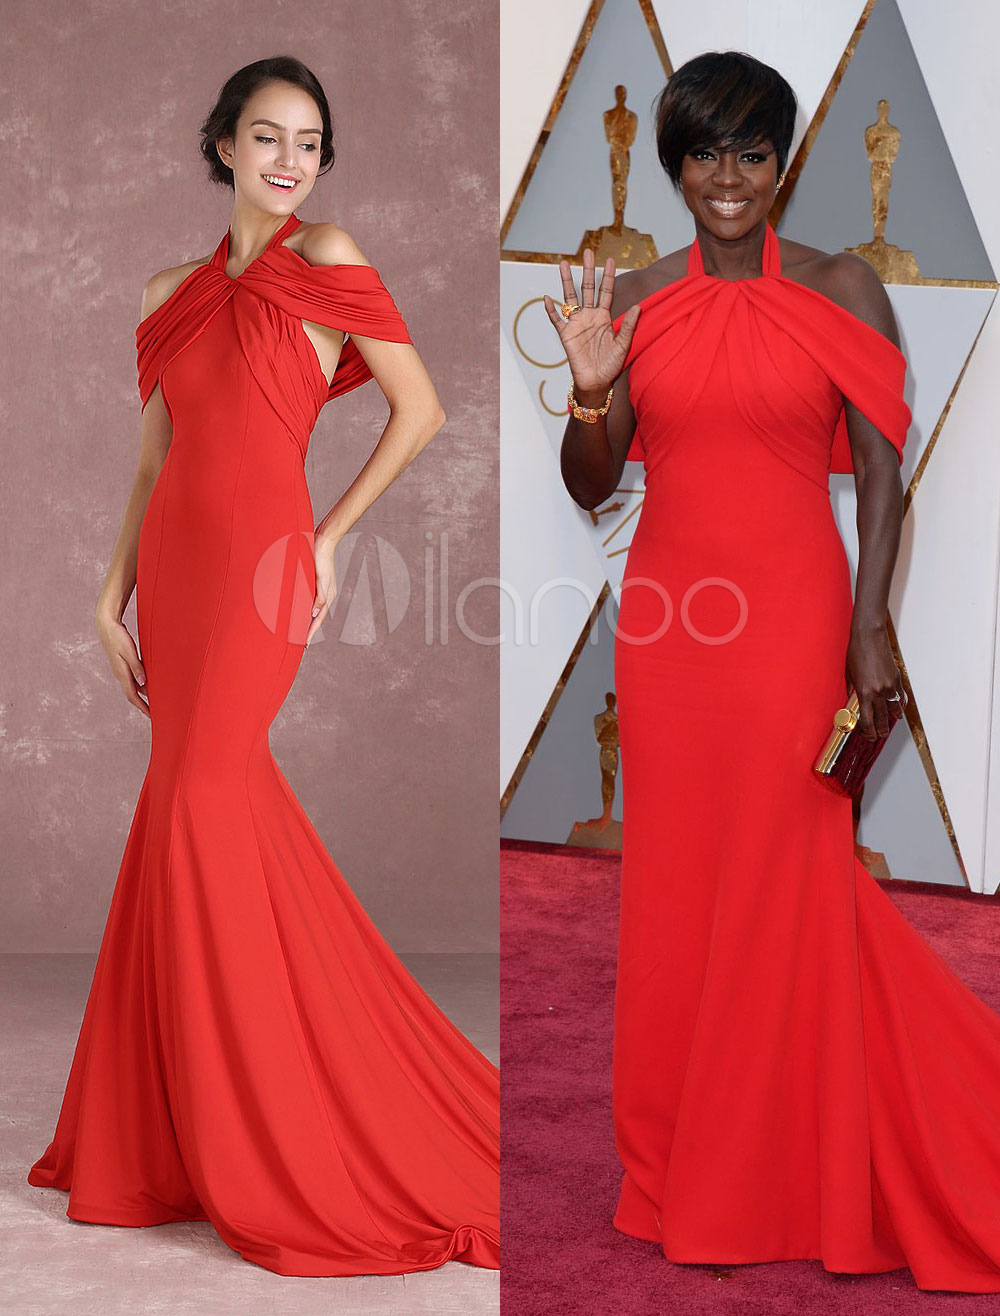 Red Celebrity Dress Halter Sleeveless Short Sleeve Cold Shoulder Party Dresses With Train Inspired By Viola Davis At Oscar Milanoo